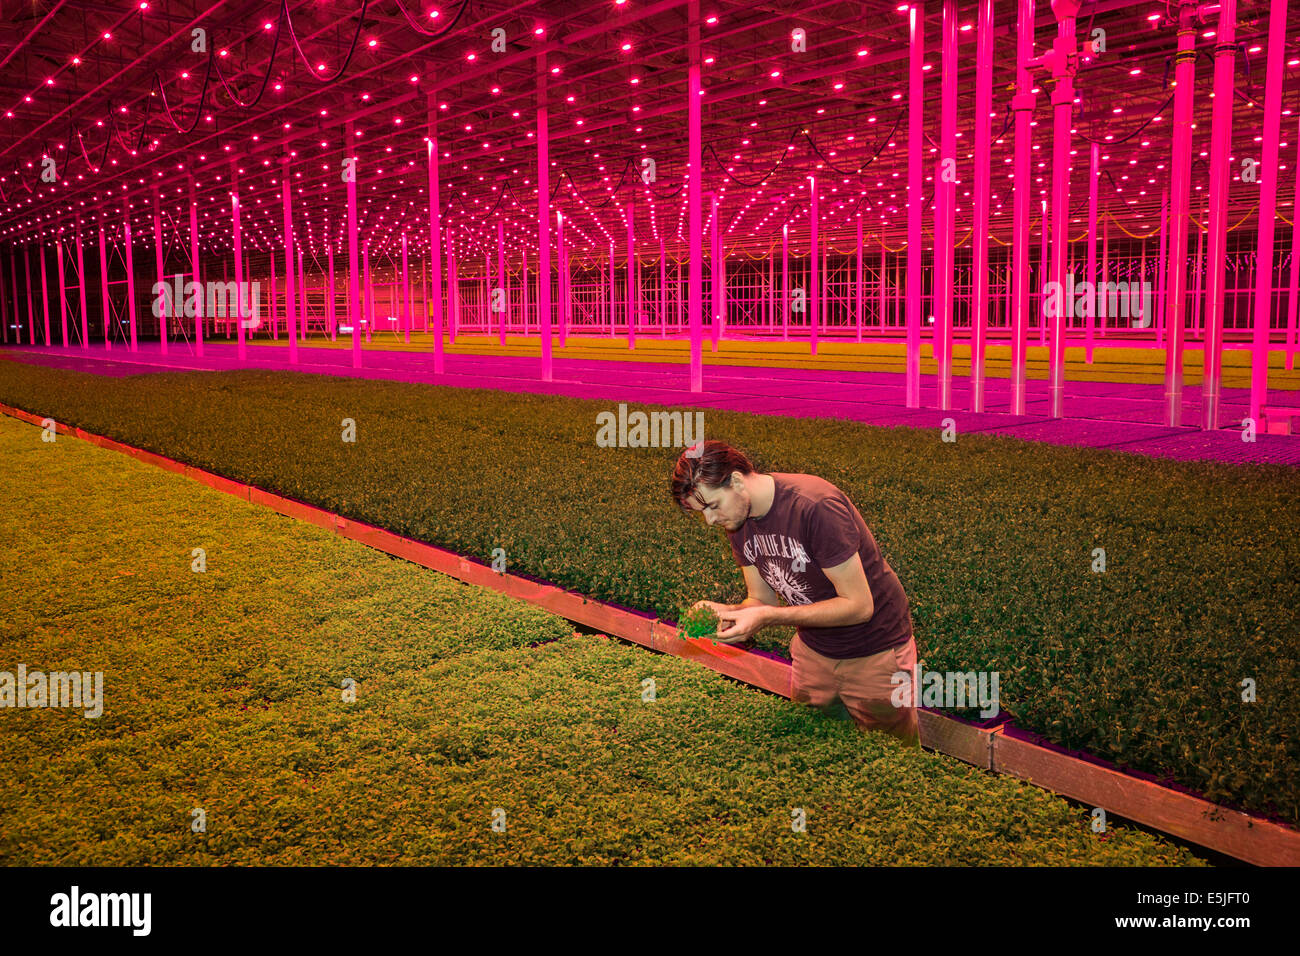 Netherlands, Monster, Red LED lamps in the Koppert Cress greenhouses - Stock Image